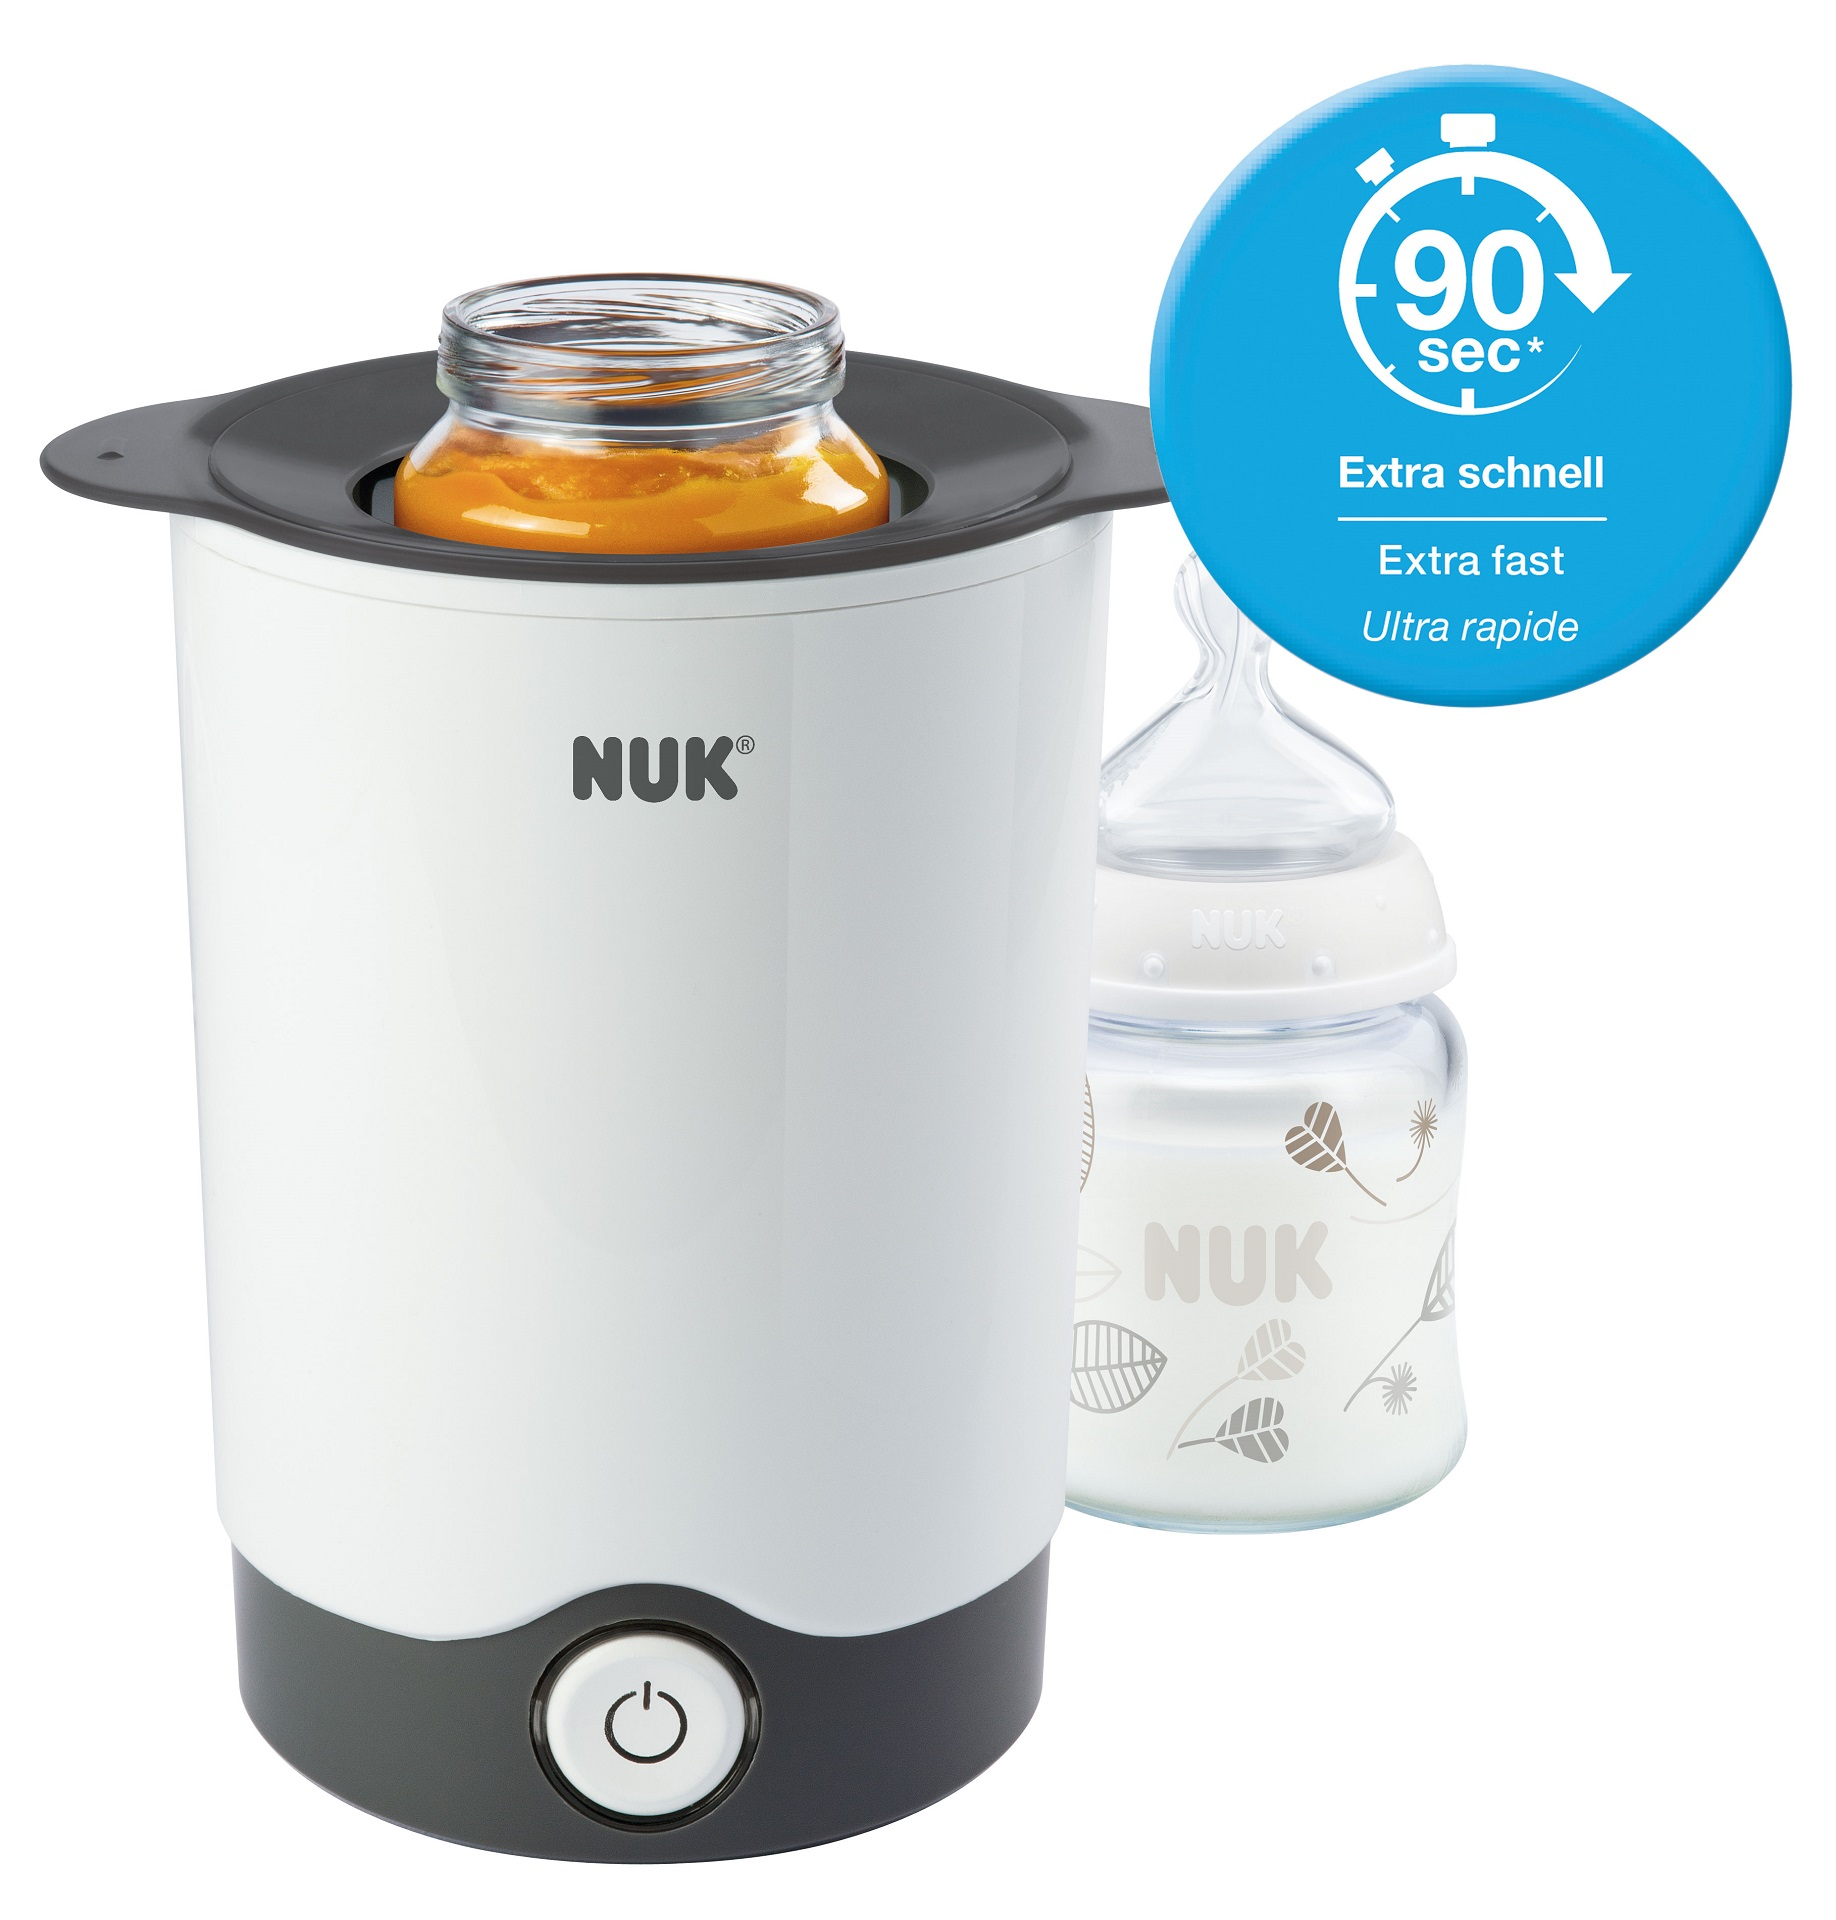 Nuk baby food warmer Thermo Rapid for quick and gentle warming NEW